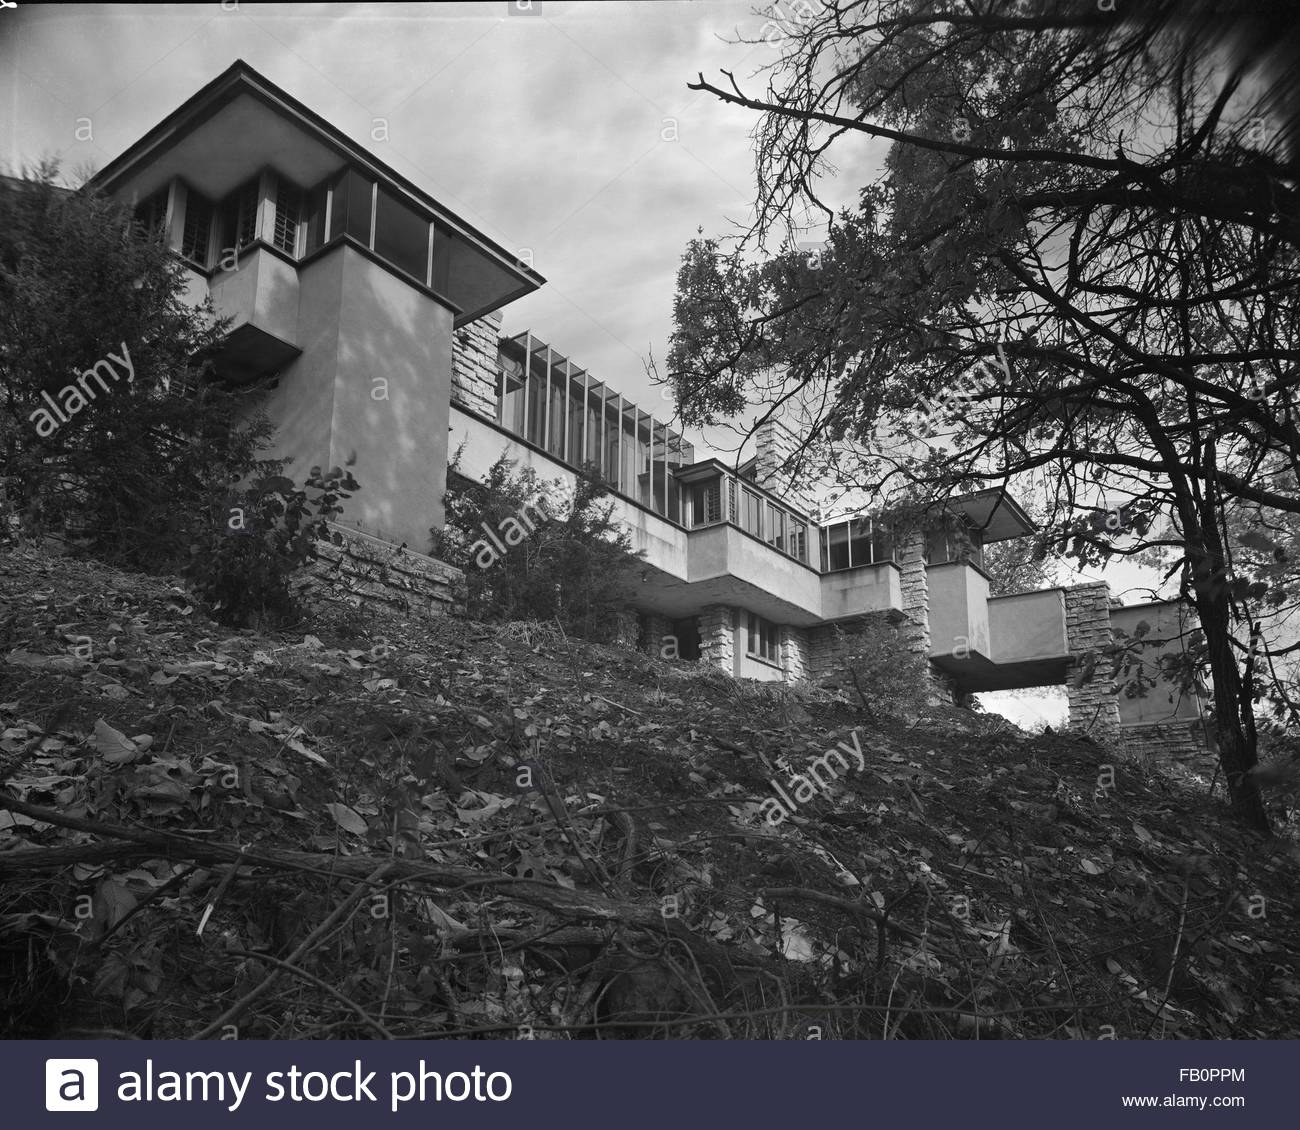 Taliesin East in Spring Green (Wis.), 1937 Dec. exterior, building view from below. - Stock Image